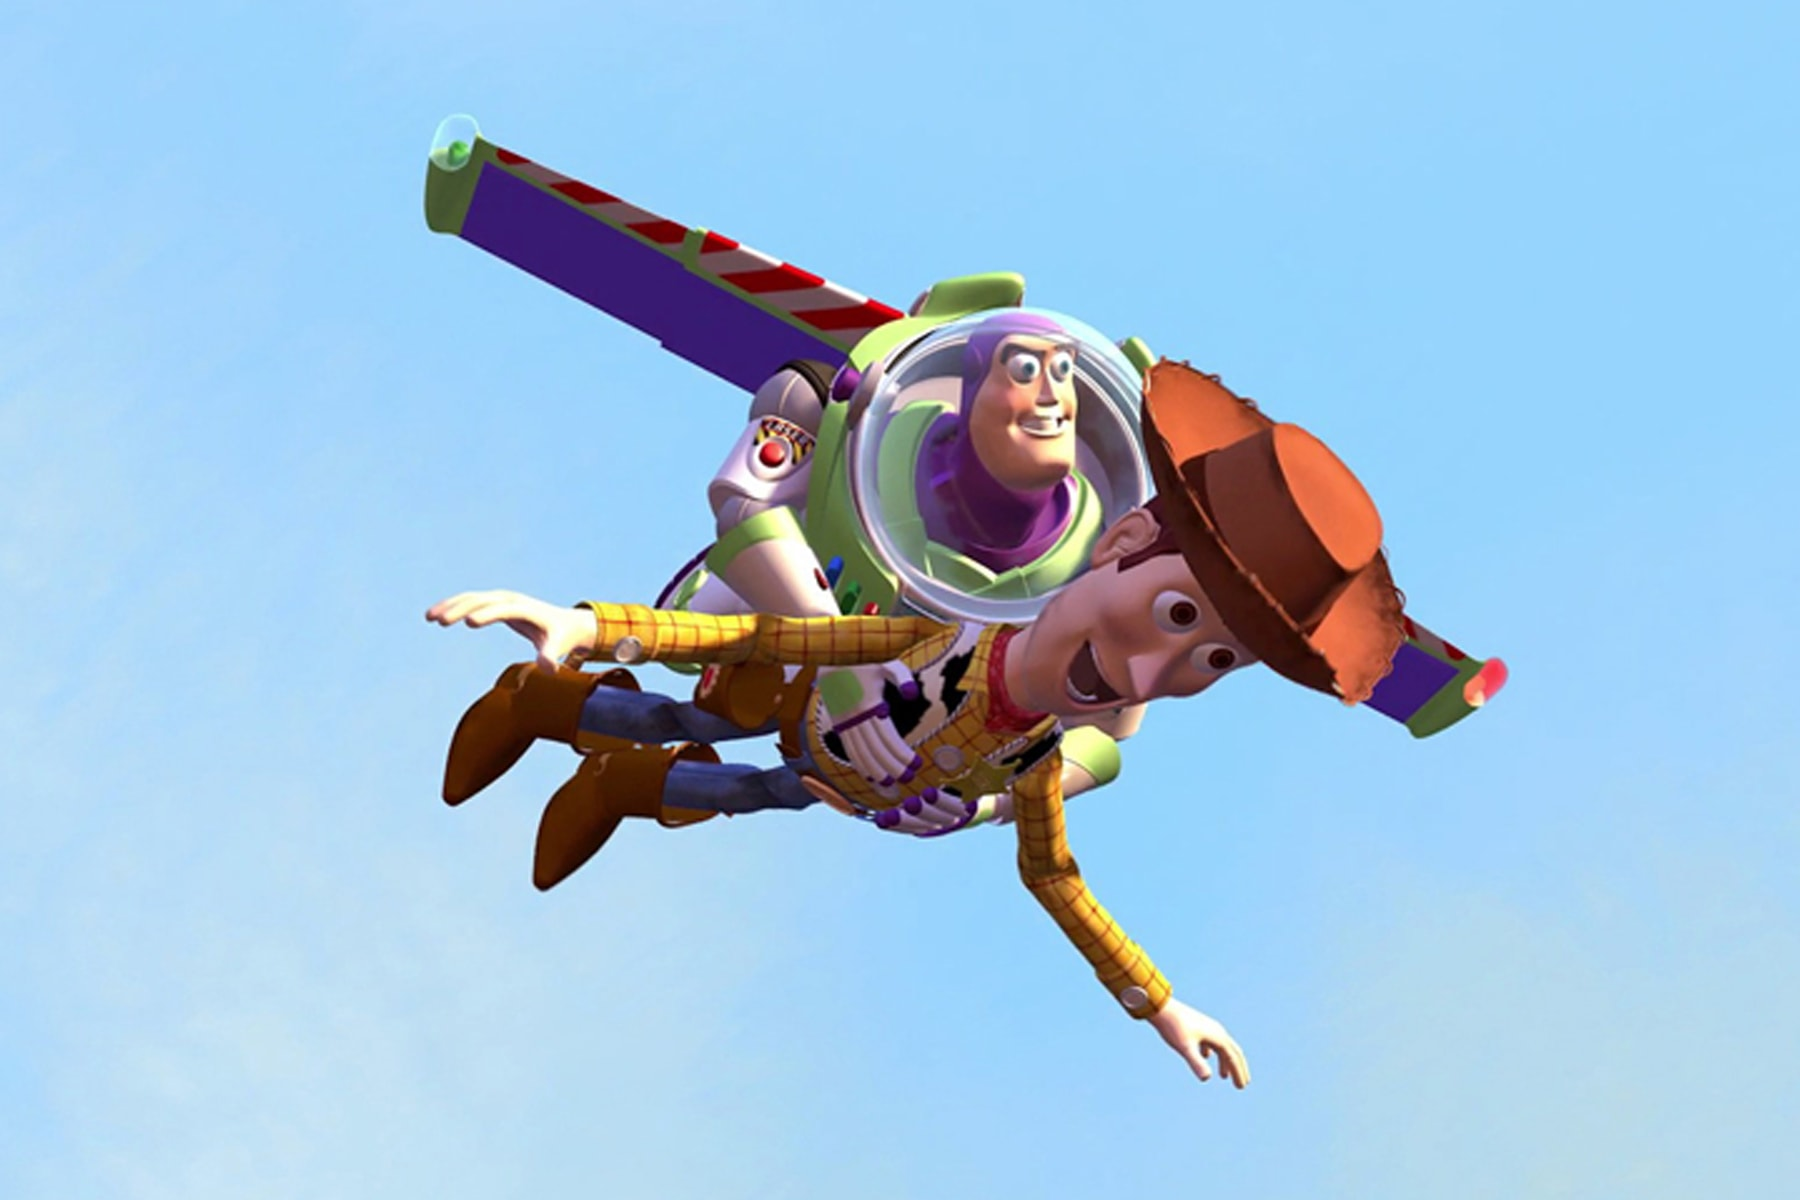 Screenshot of Woody and Buzz Lightyear in the animated film Toy Story